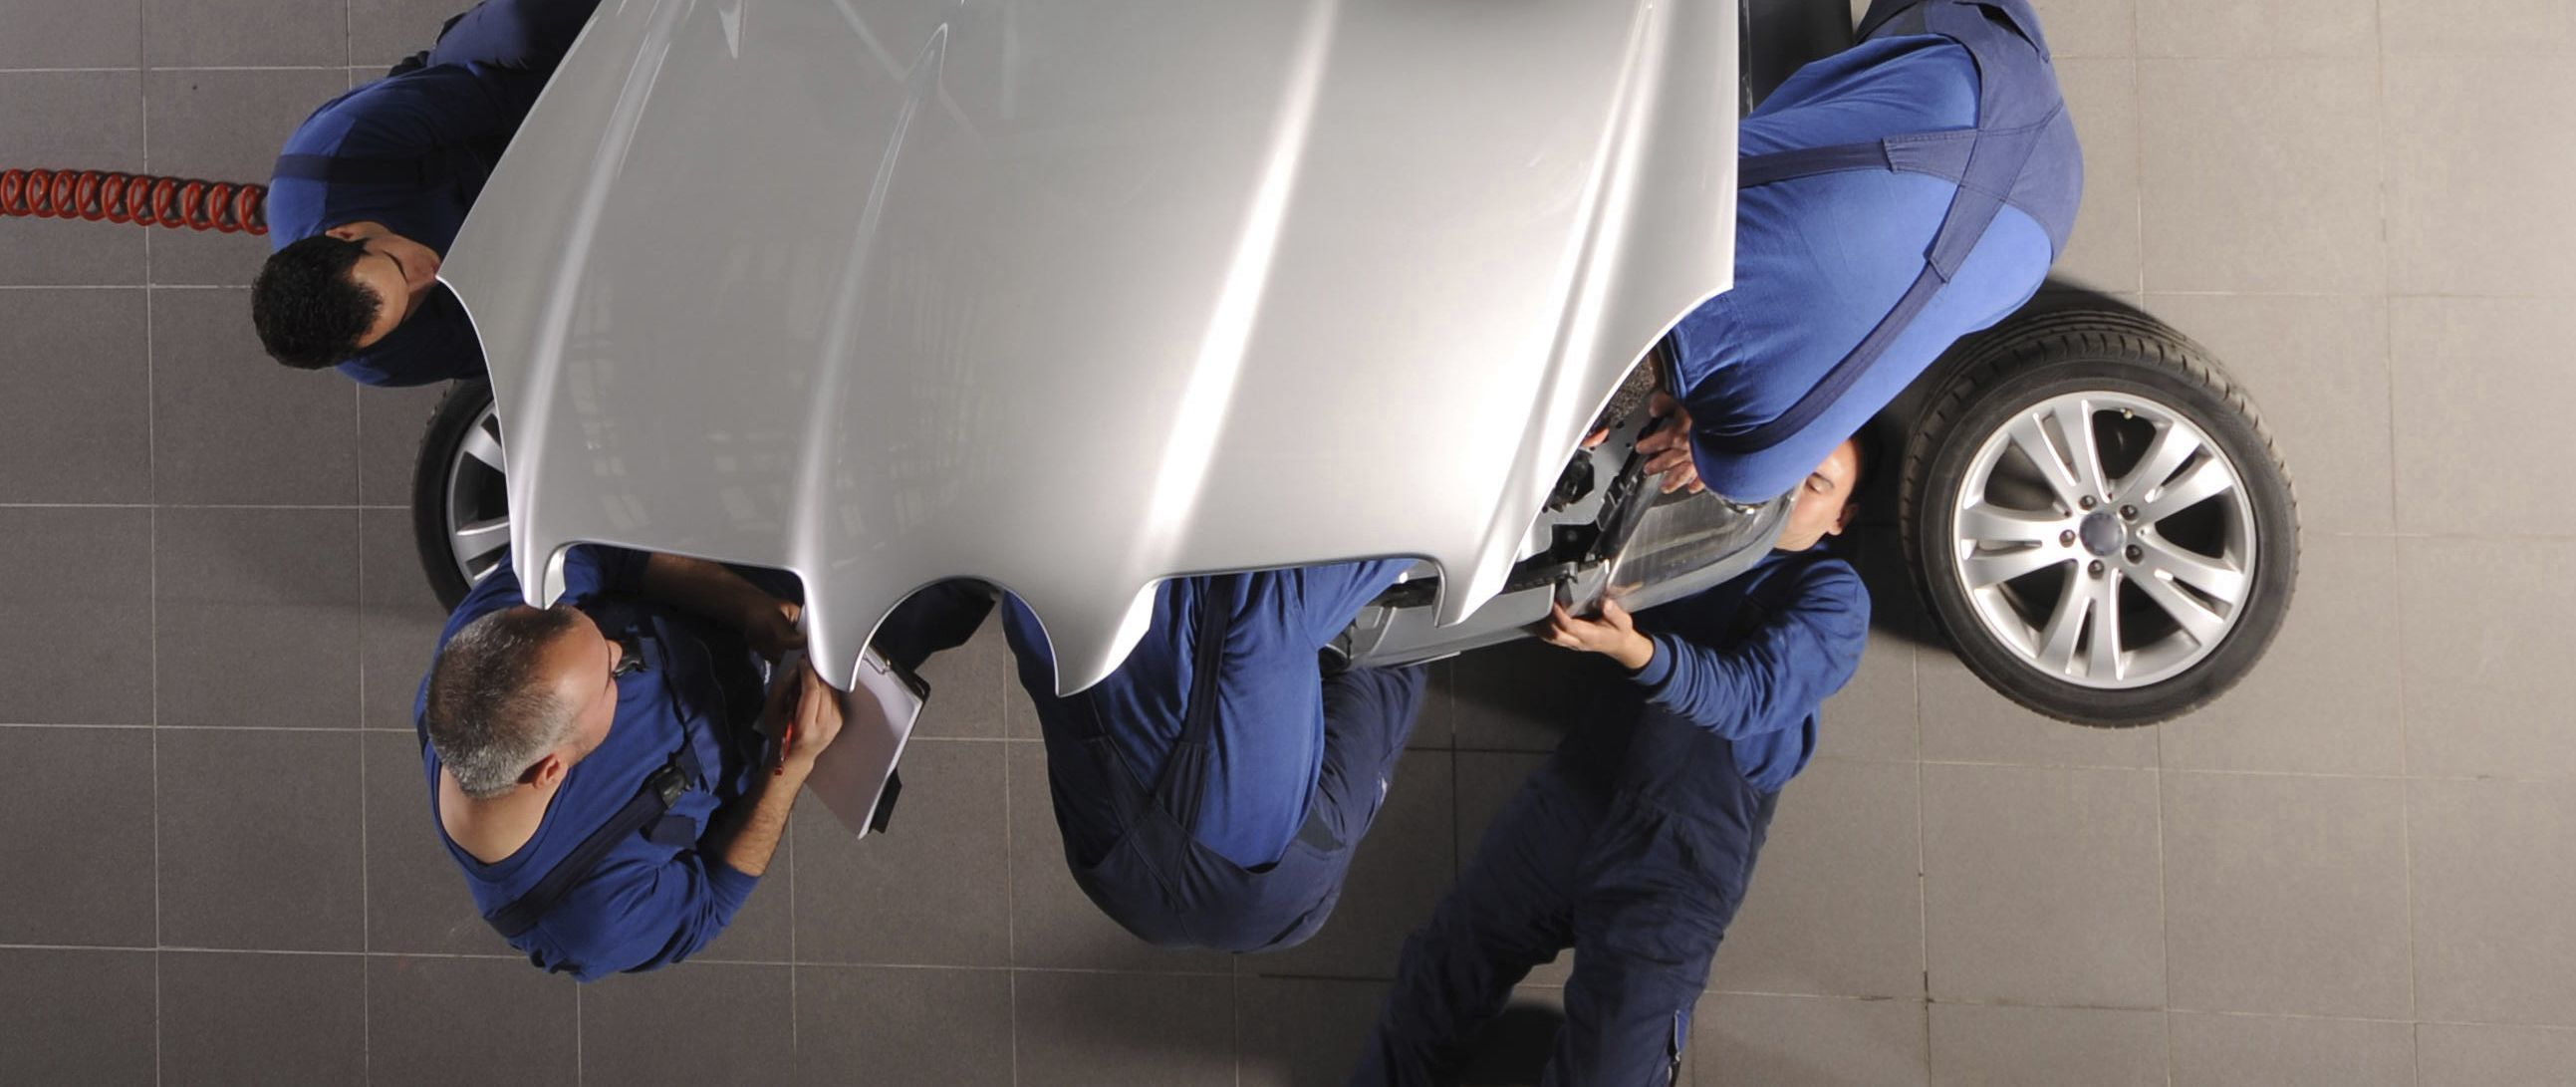 Visit Our Service Department for All of Your Vehicle Maintenance Needs!